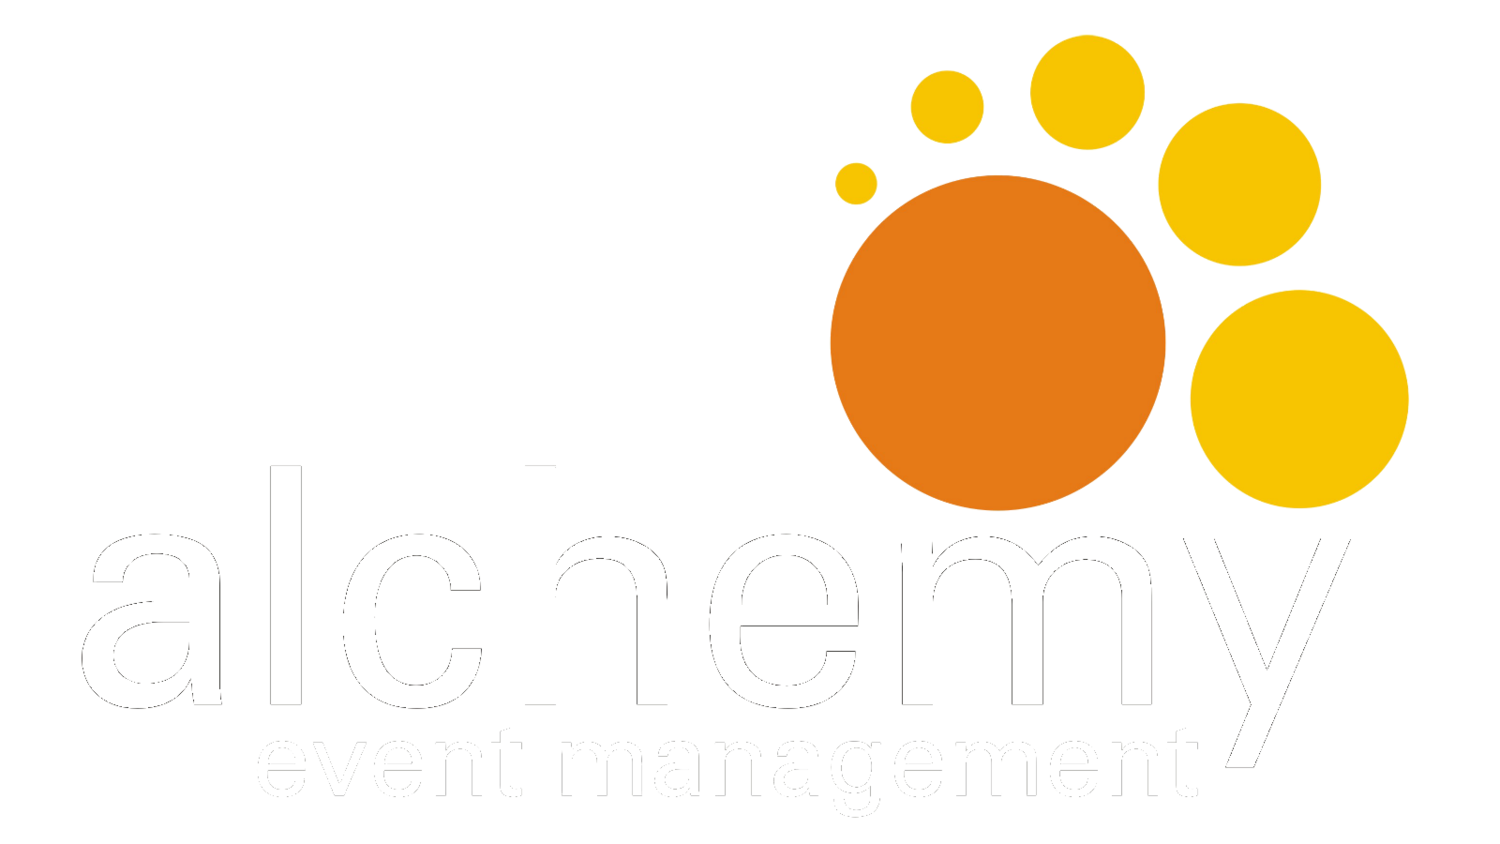 Alchemy Event Management